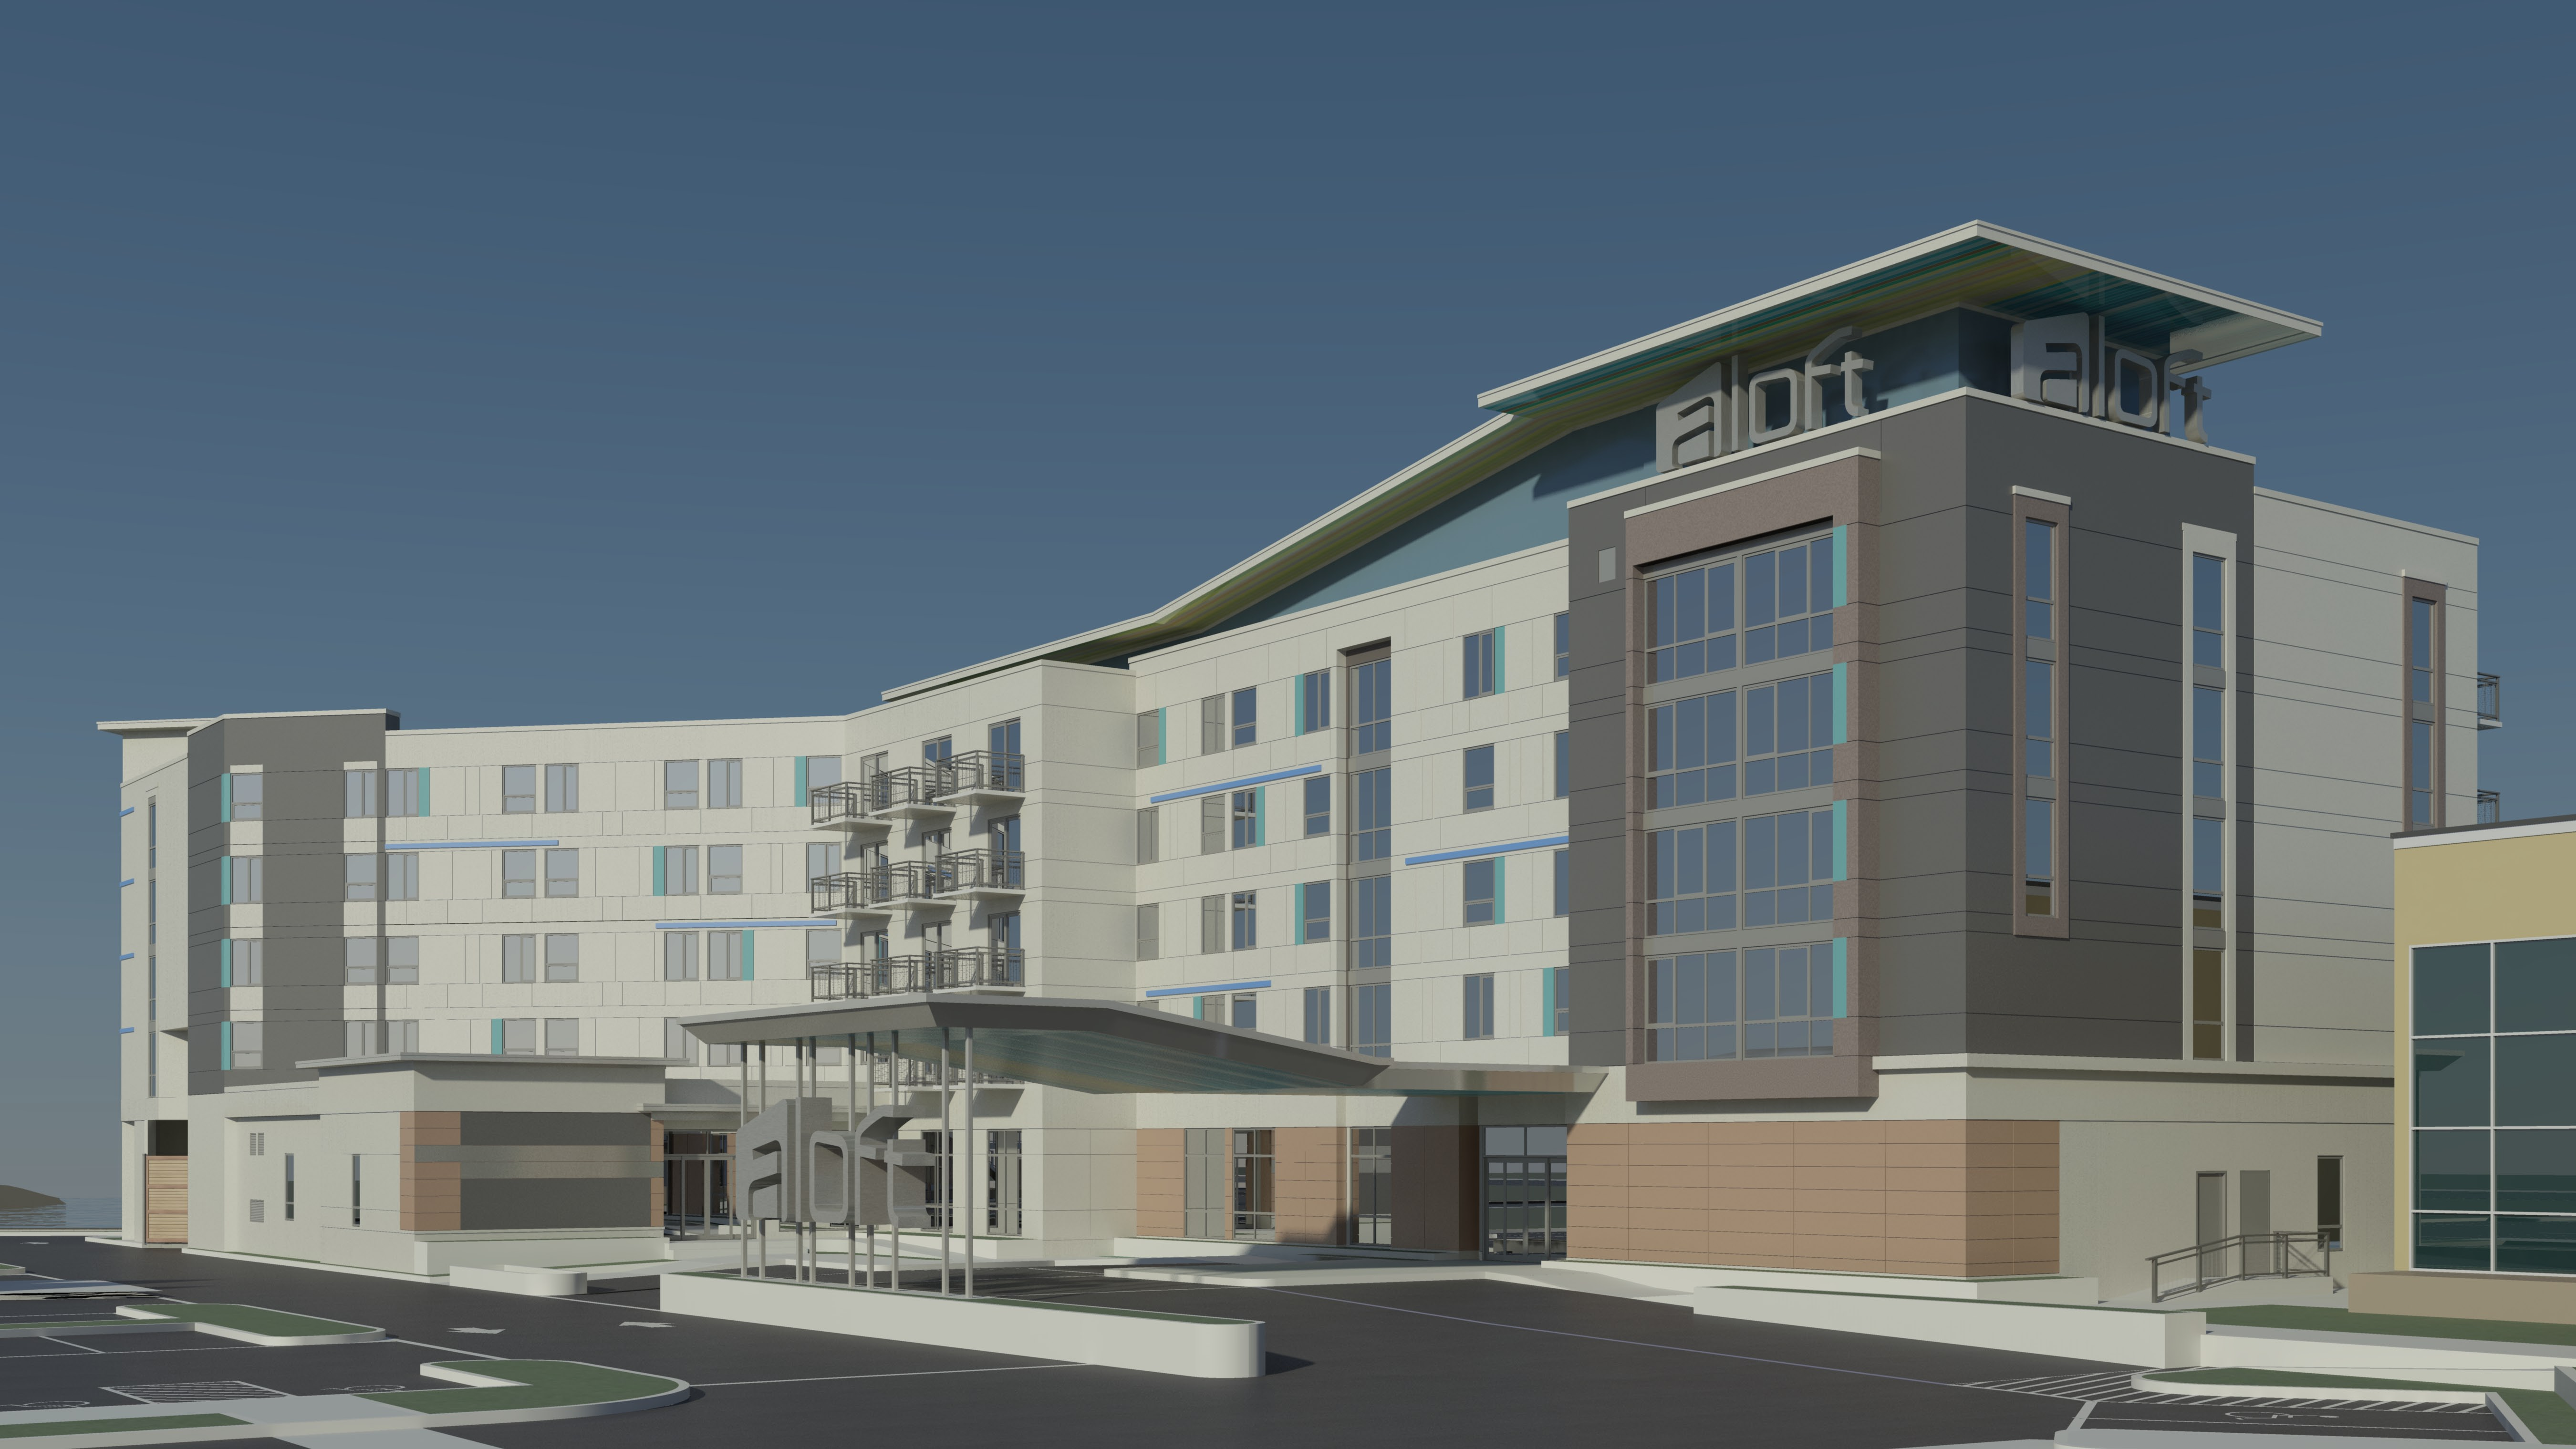 10/06/2016 | OC Planning Comm. Approves Hotel Proposal | News Ocean ...